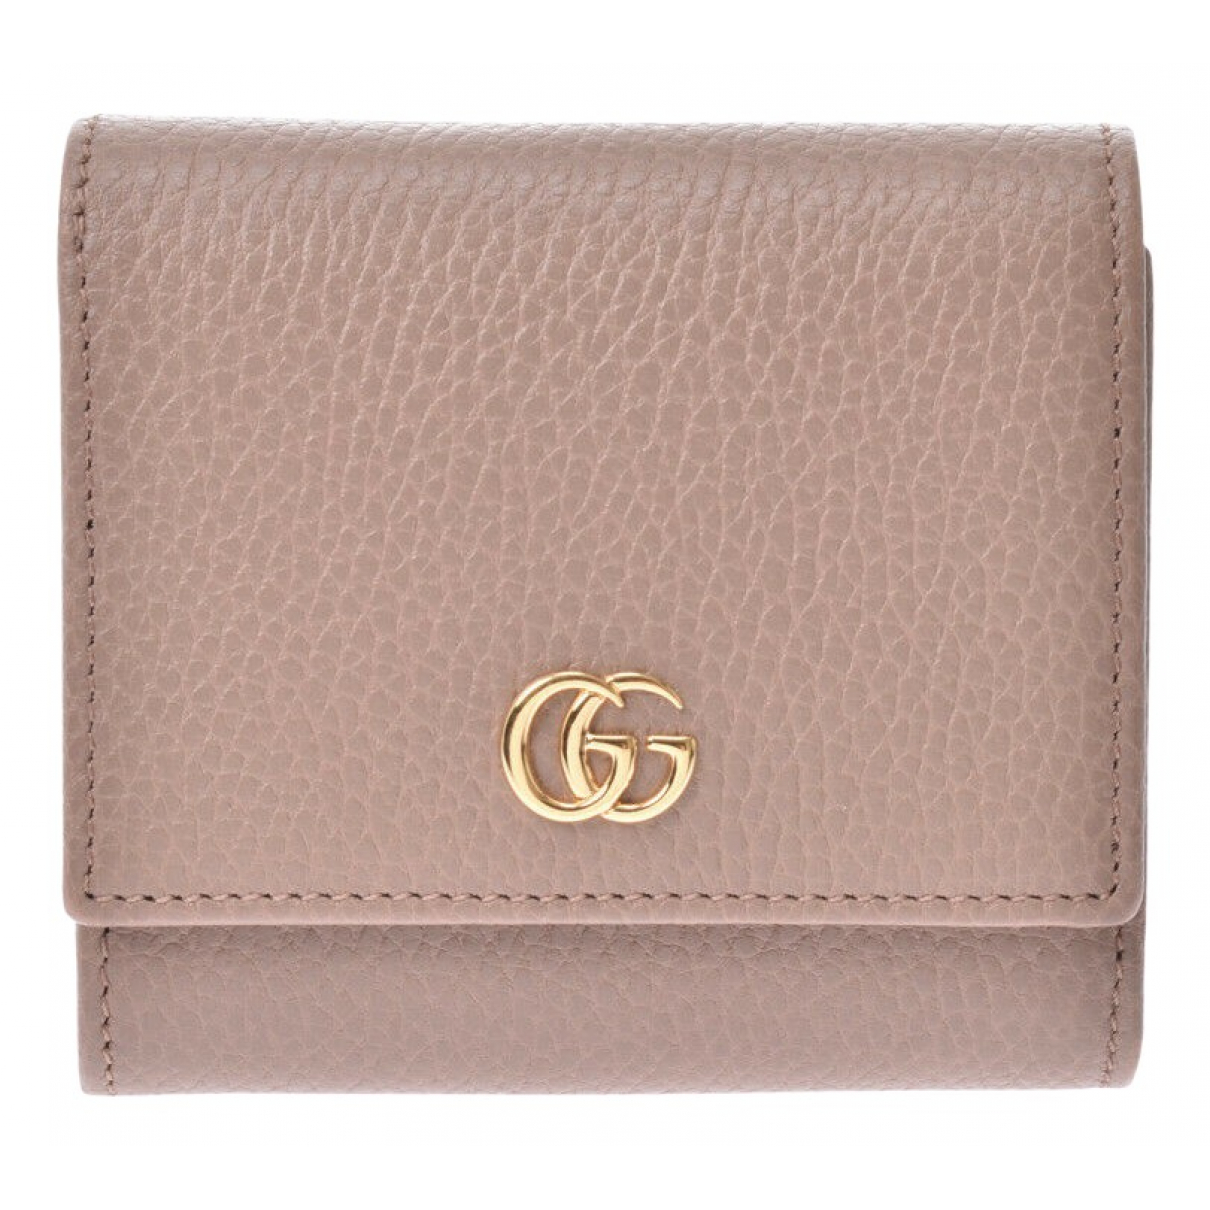 Gucci \N Camel Leather wallet for Women \N